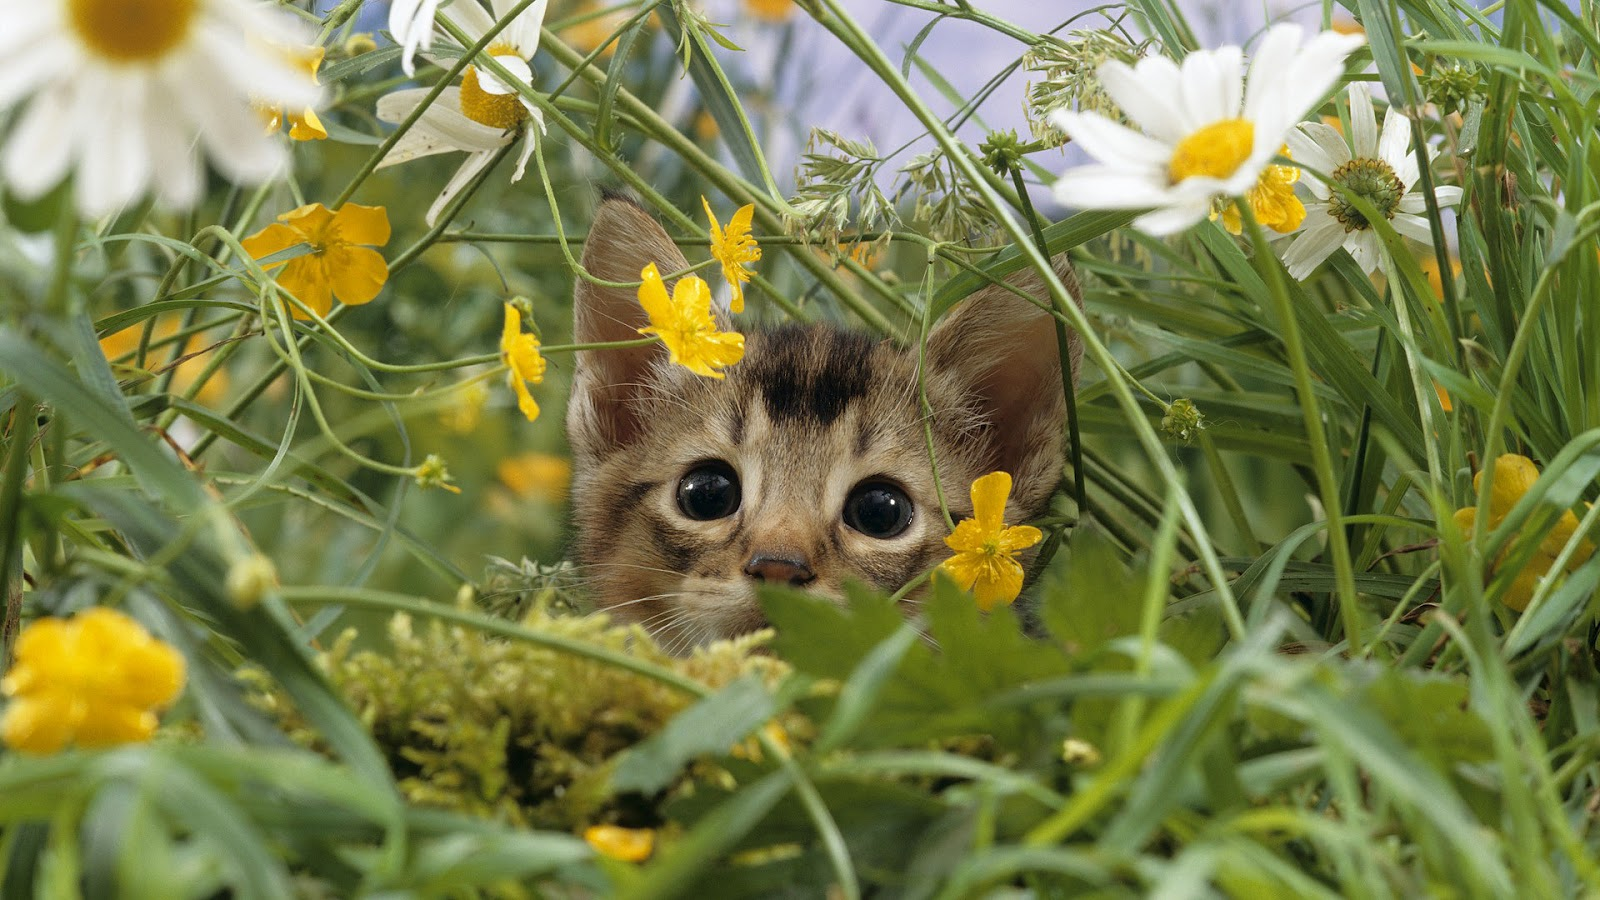 Cool   Wallpaper Horse Flower - hd-cat-wallpaper-with-a-cat-in-the-high-grass-background  Gallery_332085.jpg